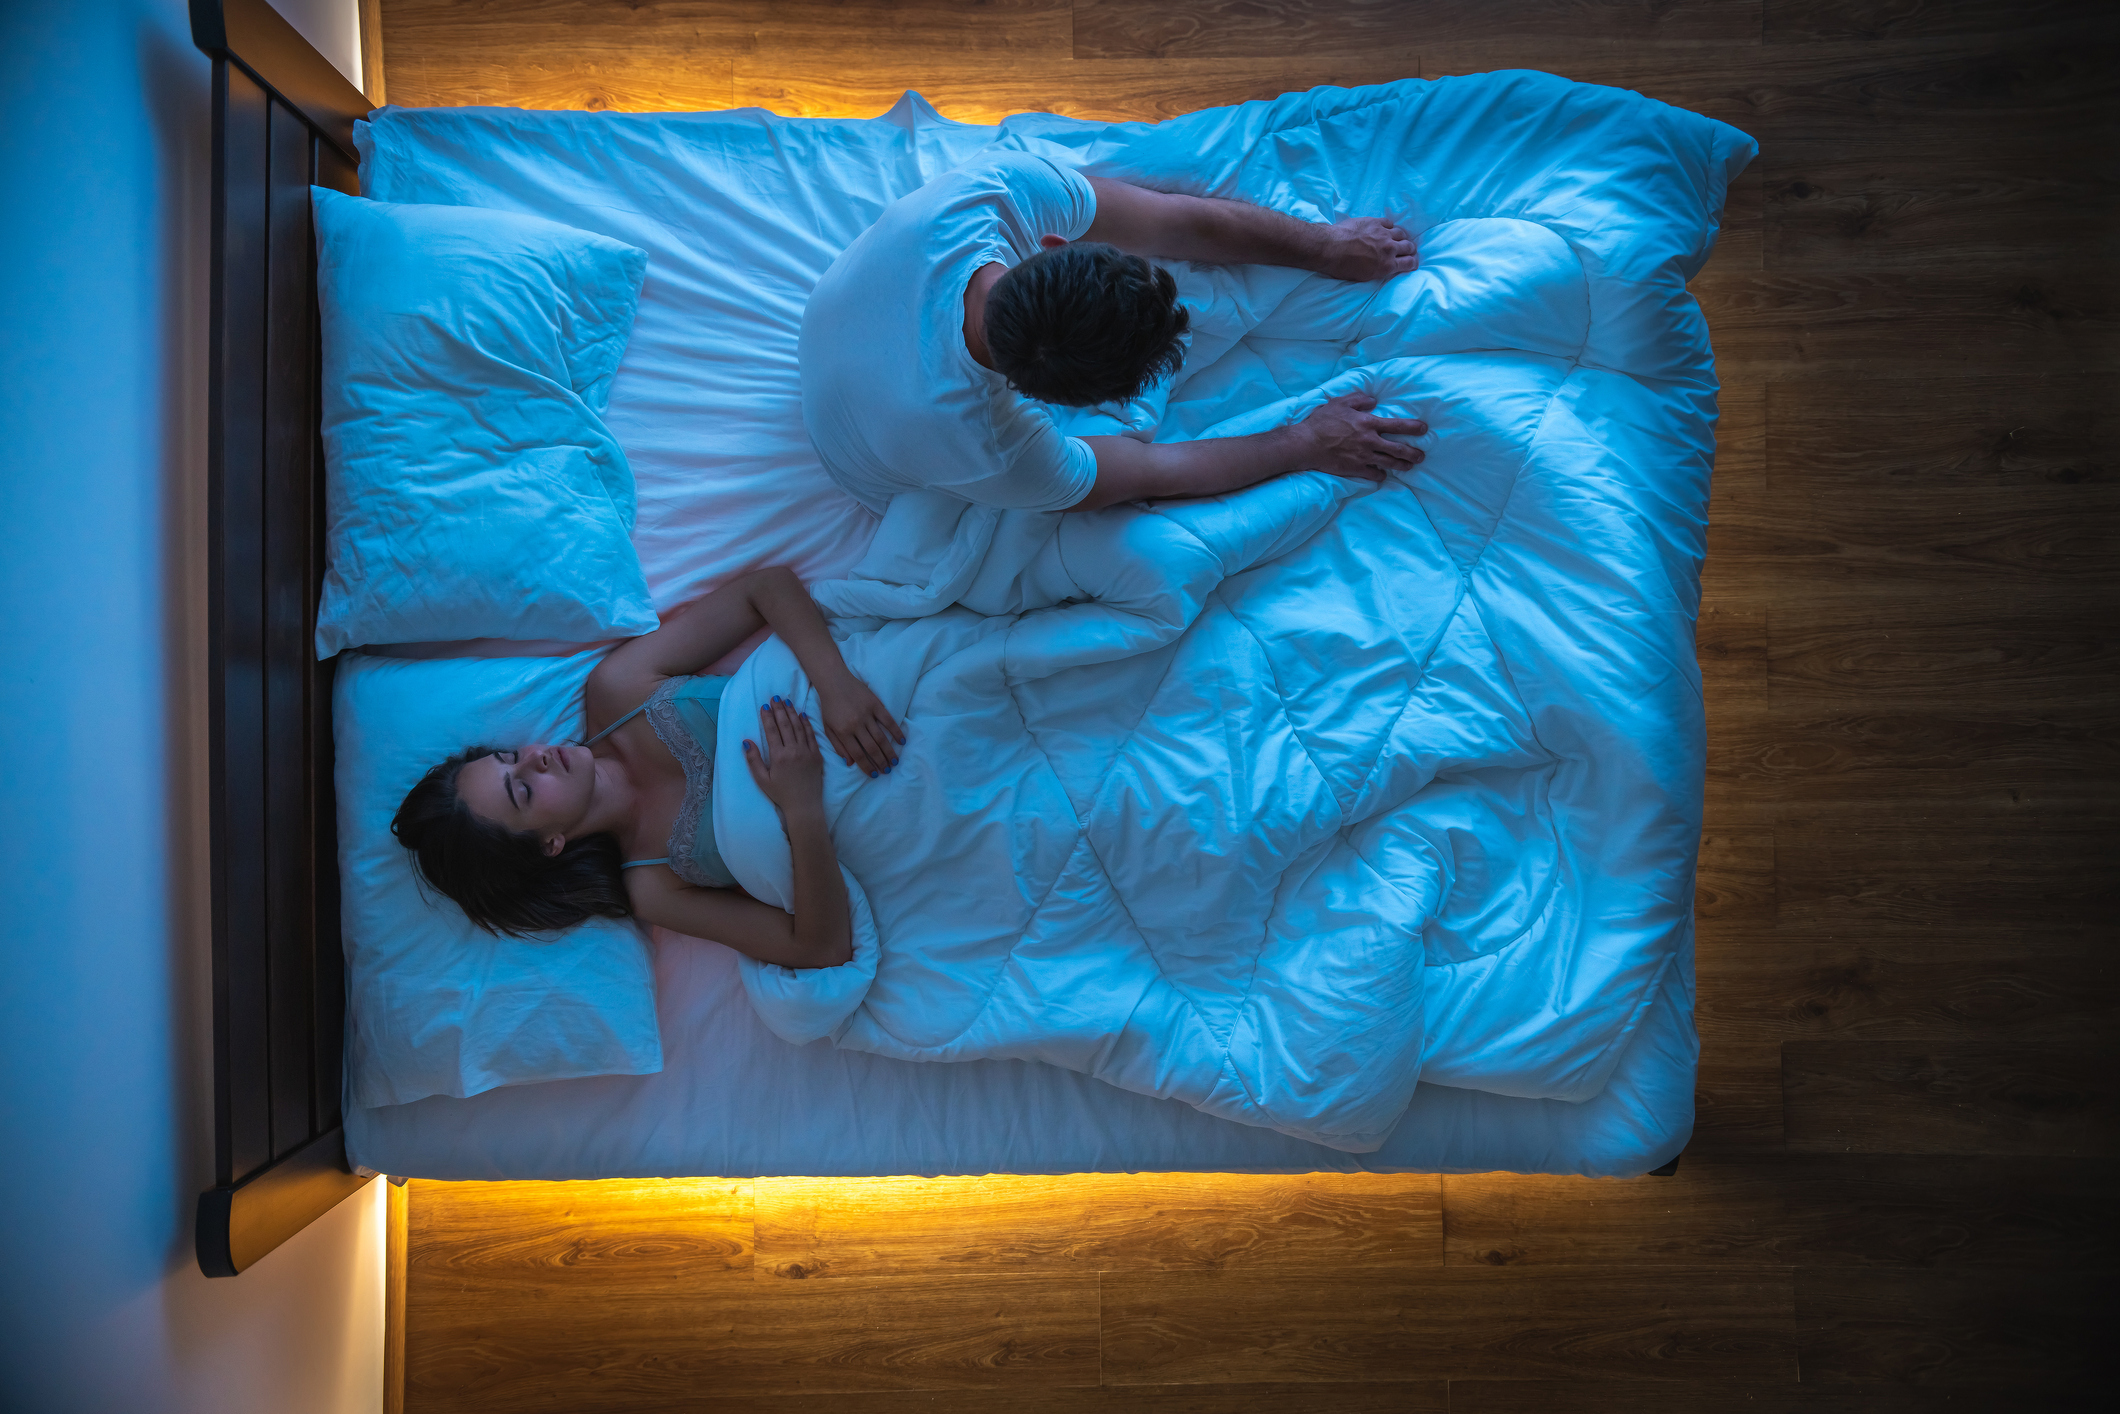 Do you flail and kick in your sleep? It could mean Parkinson's